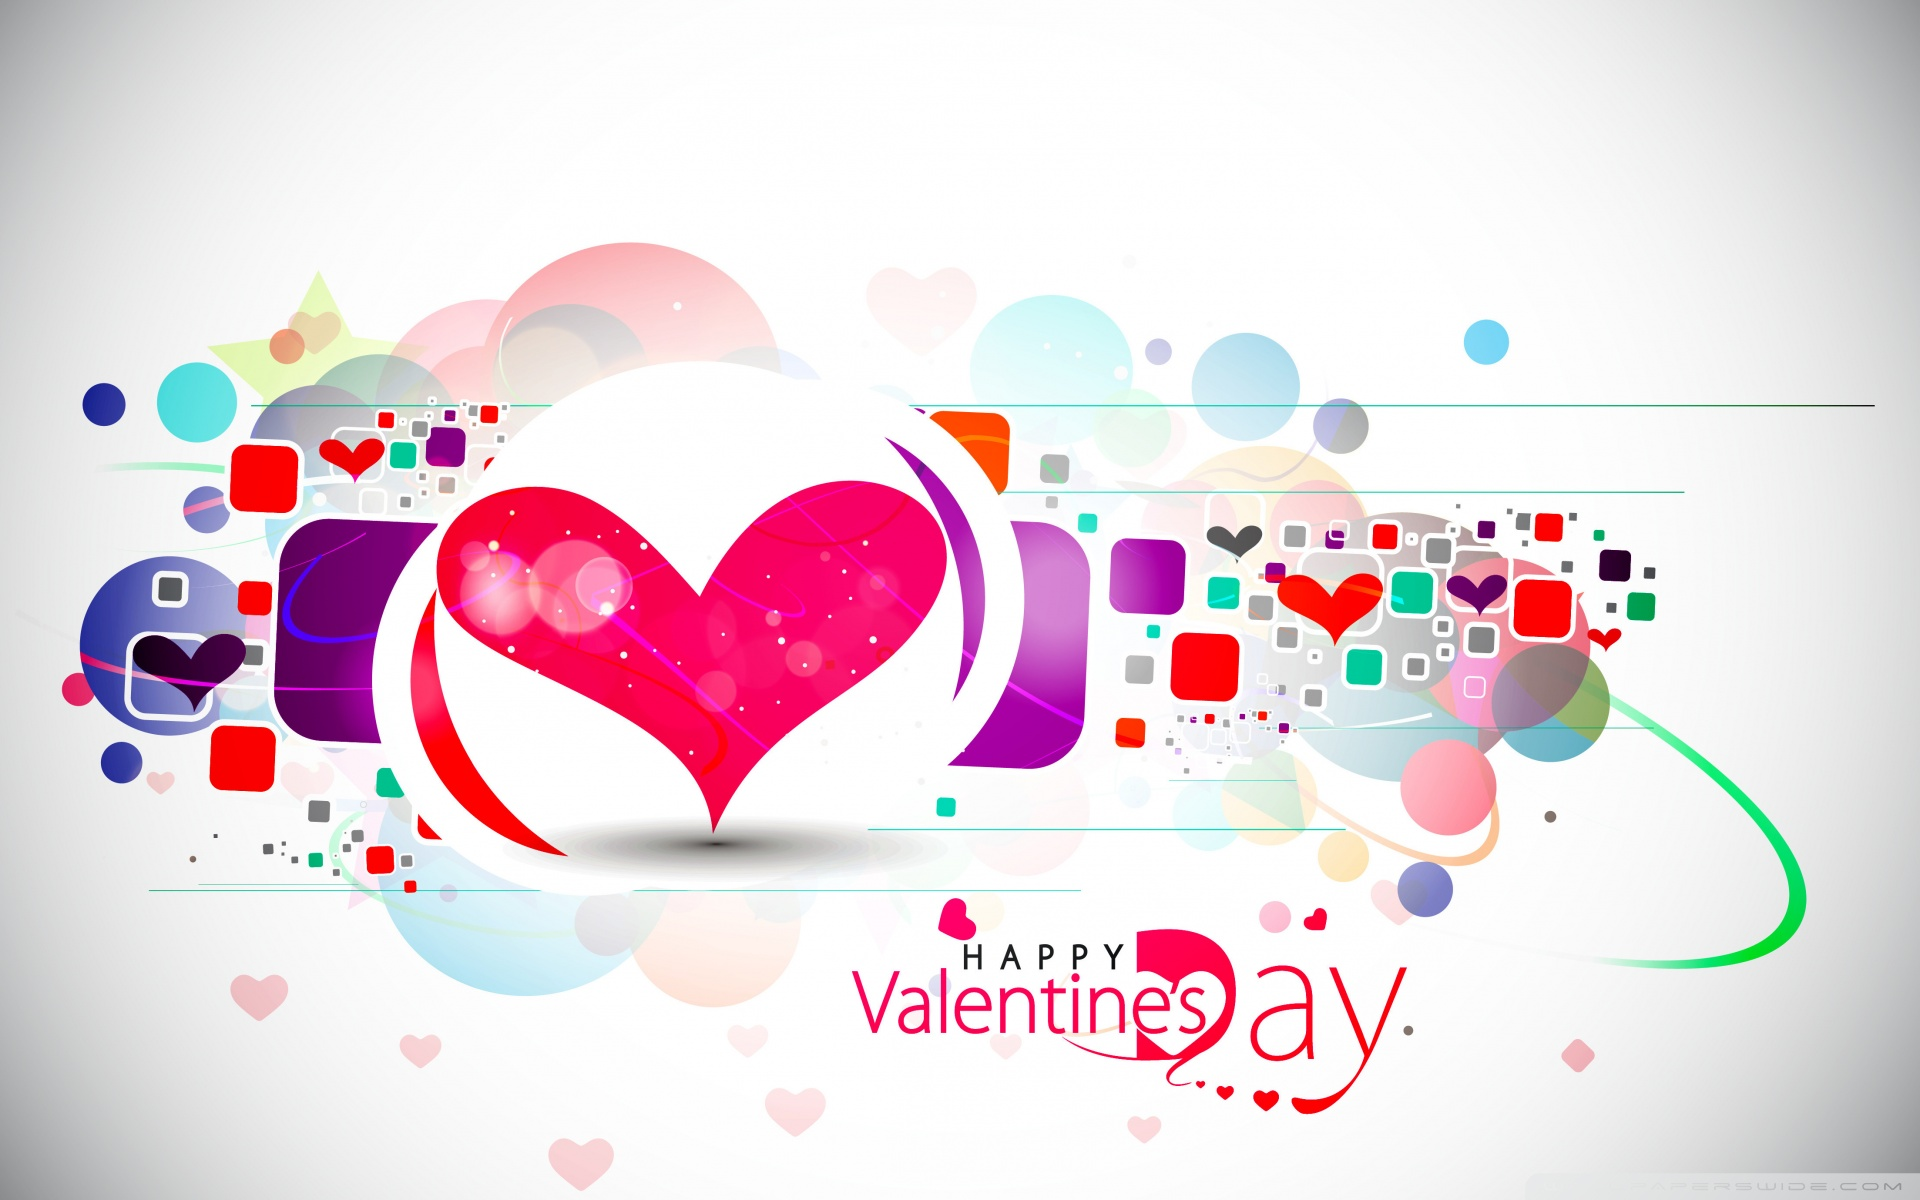 Top # 100+ Happy Valentines Day 2017 HD Wallpapers Free Download ...